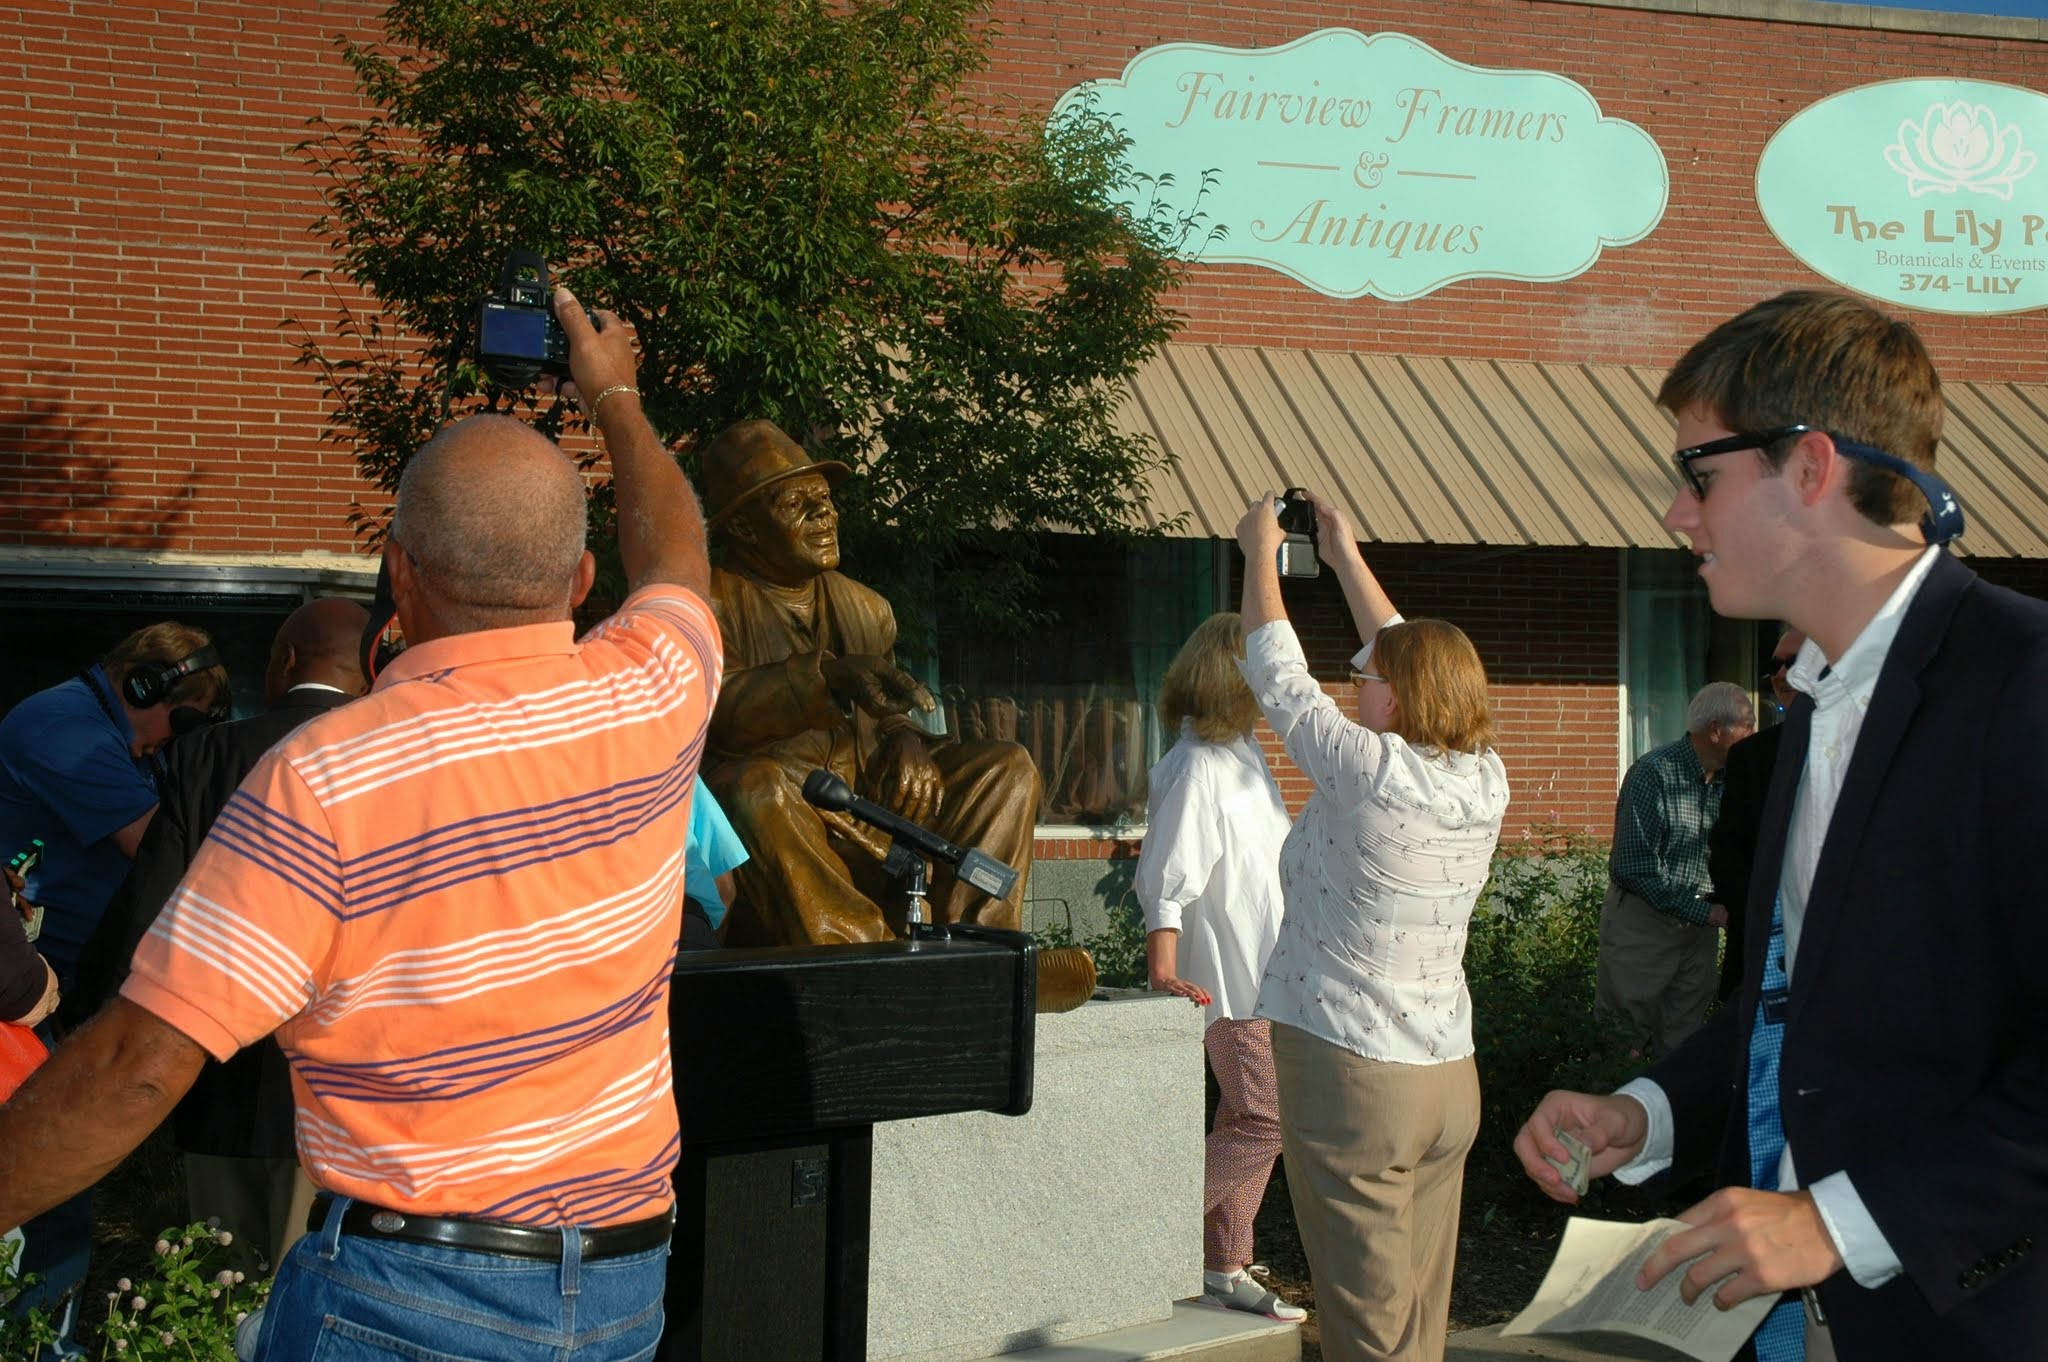 People trying to get the best picture of this latest public sculpture in Lake City, SC.